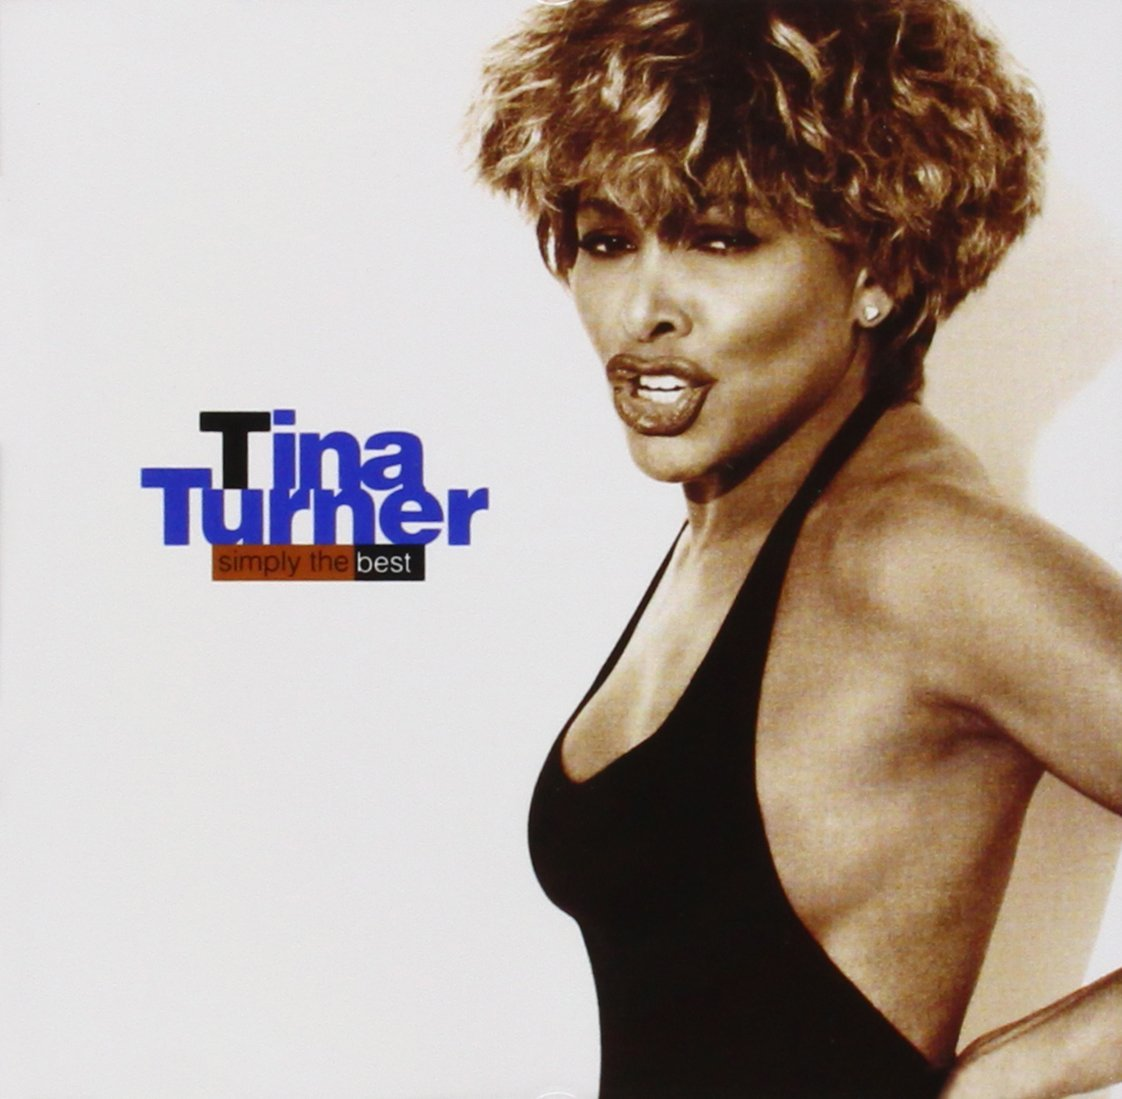 Tina turner simply the best cd musiczone vinyl for Simply singles